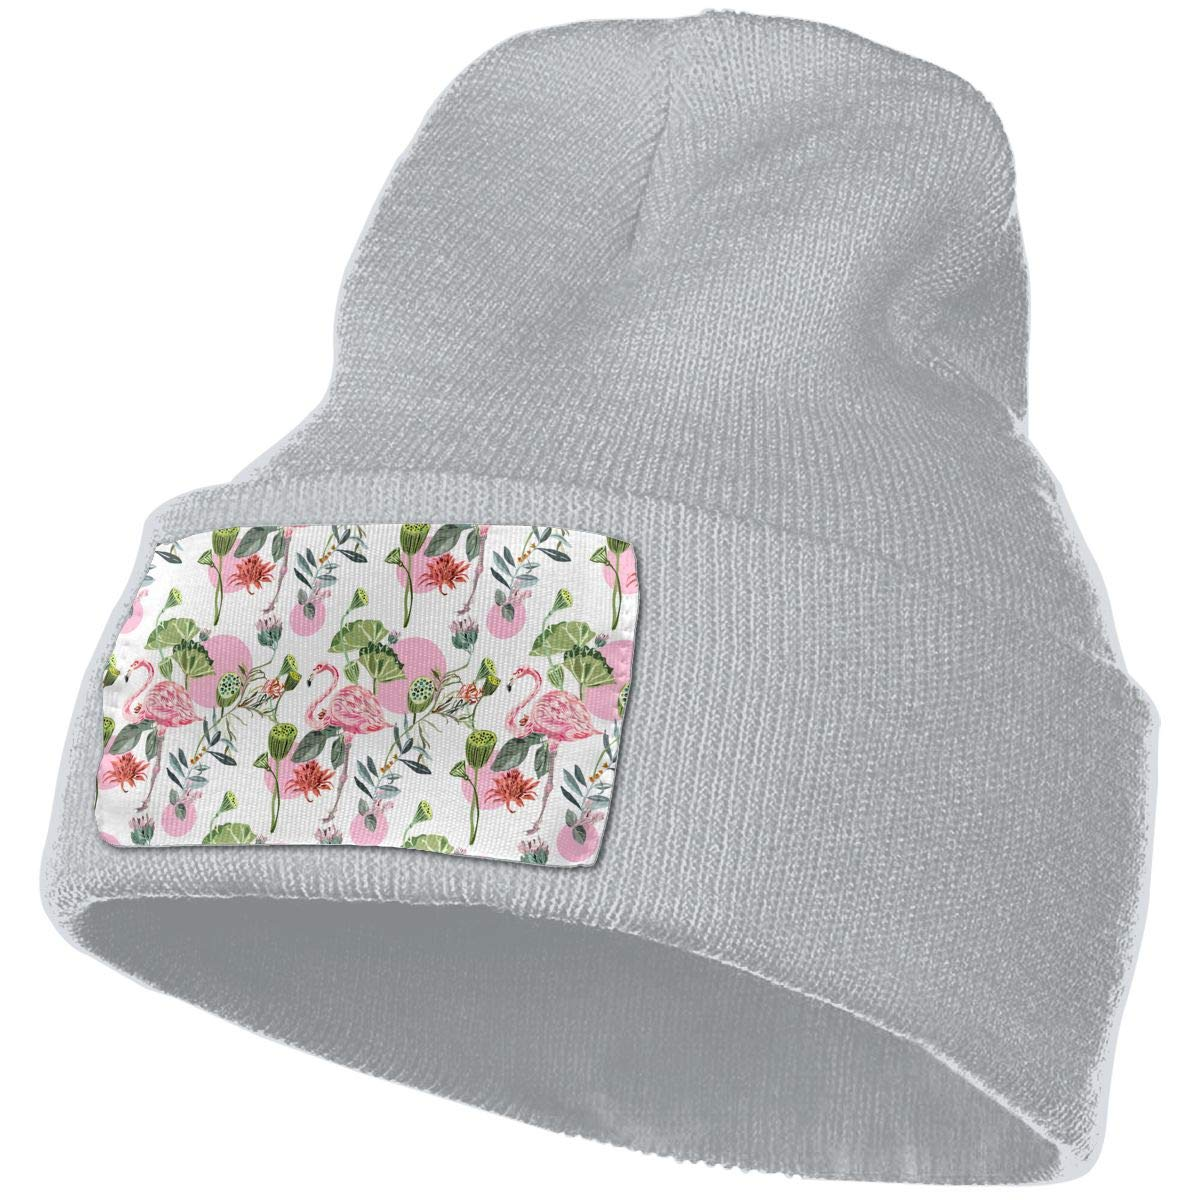 Flamingos and Water Lilies Unisex Fashion Knitted Hat Luxury Hip-Hop Cap